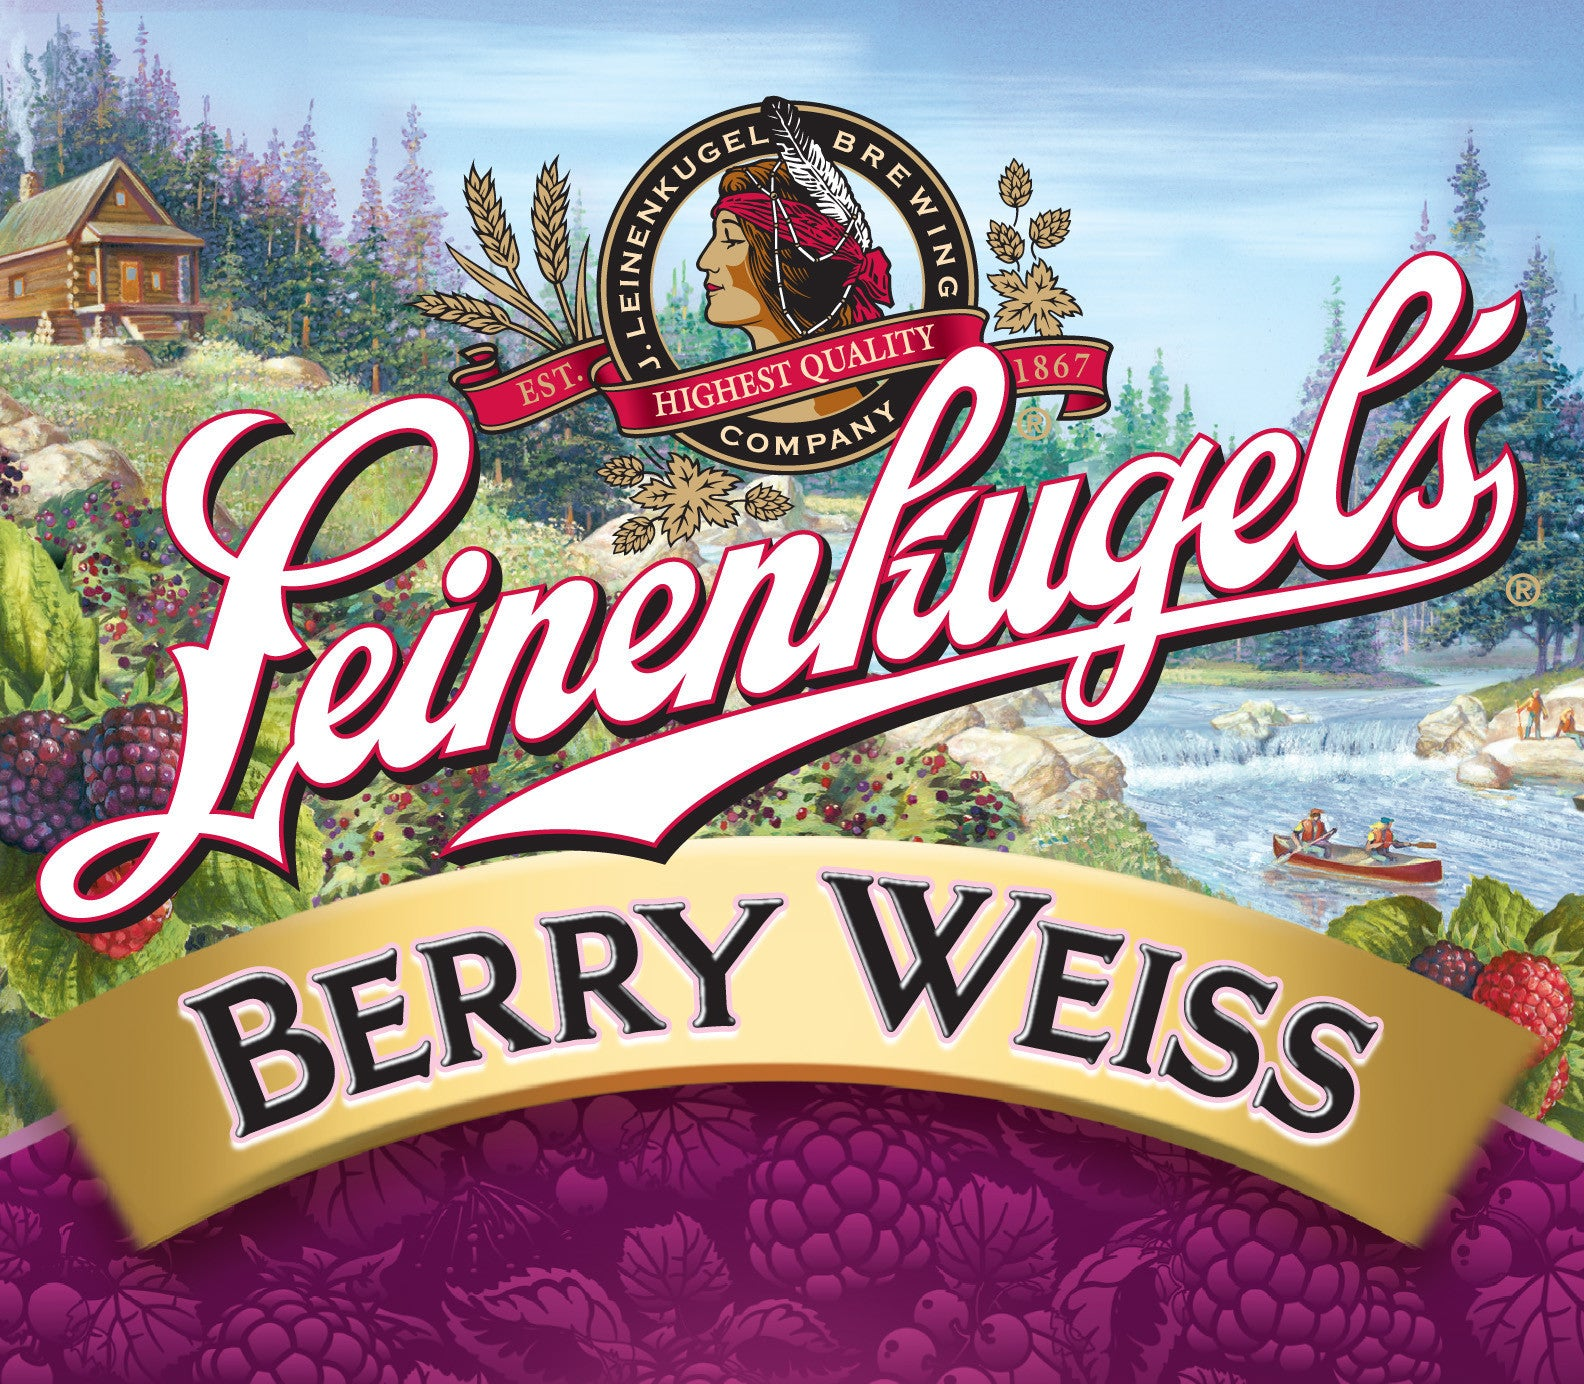 Leinenkugels Berry Weiss 6Pk Bottles